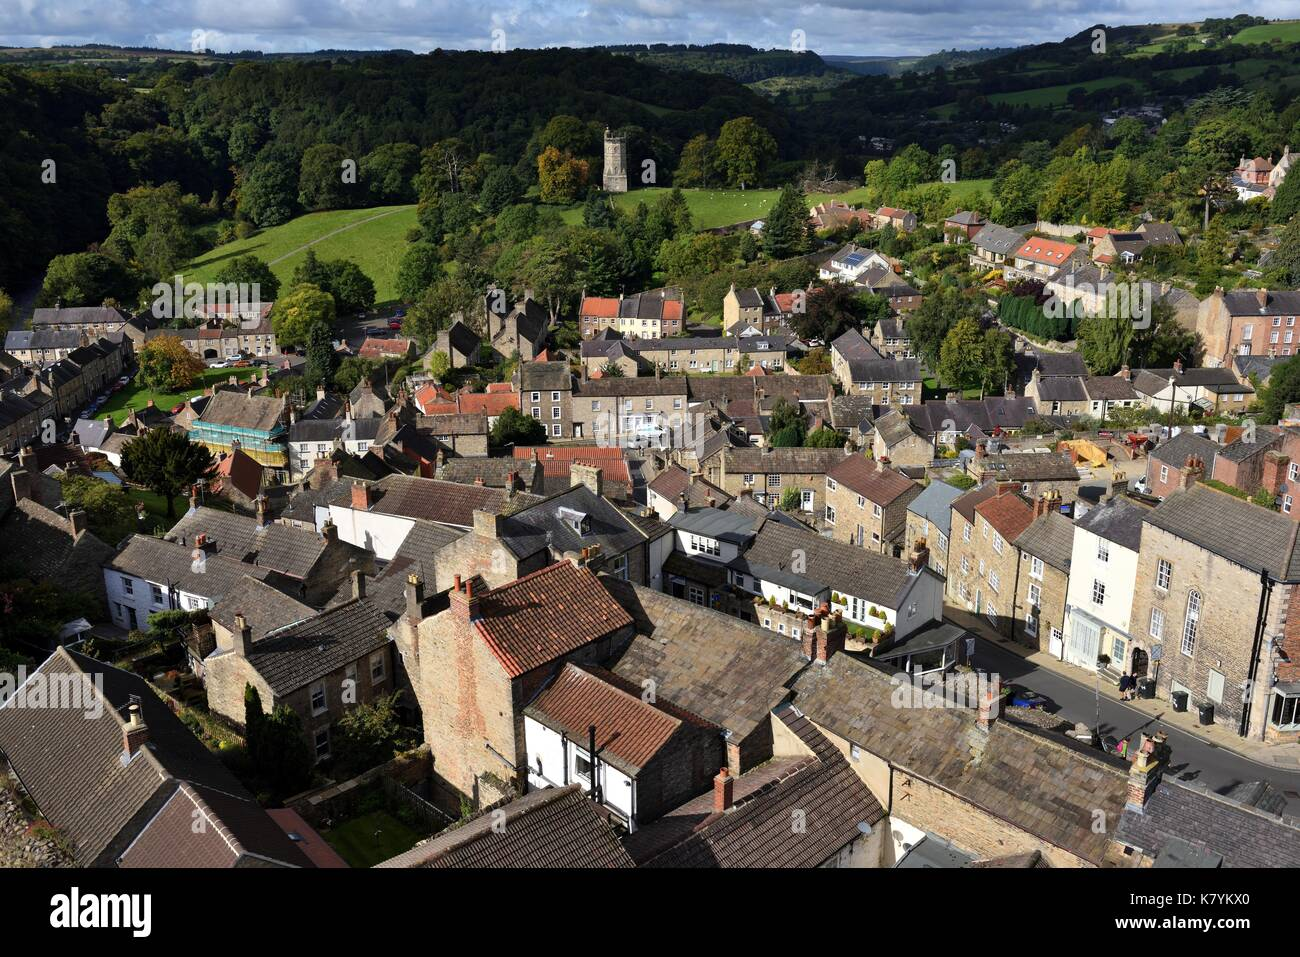 Richmond Yorkshire, seen from above - Stock Image